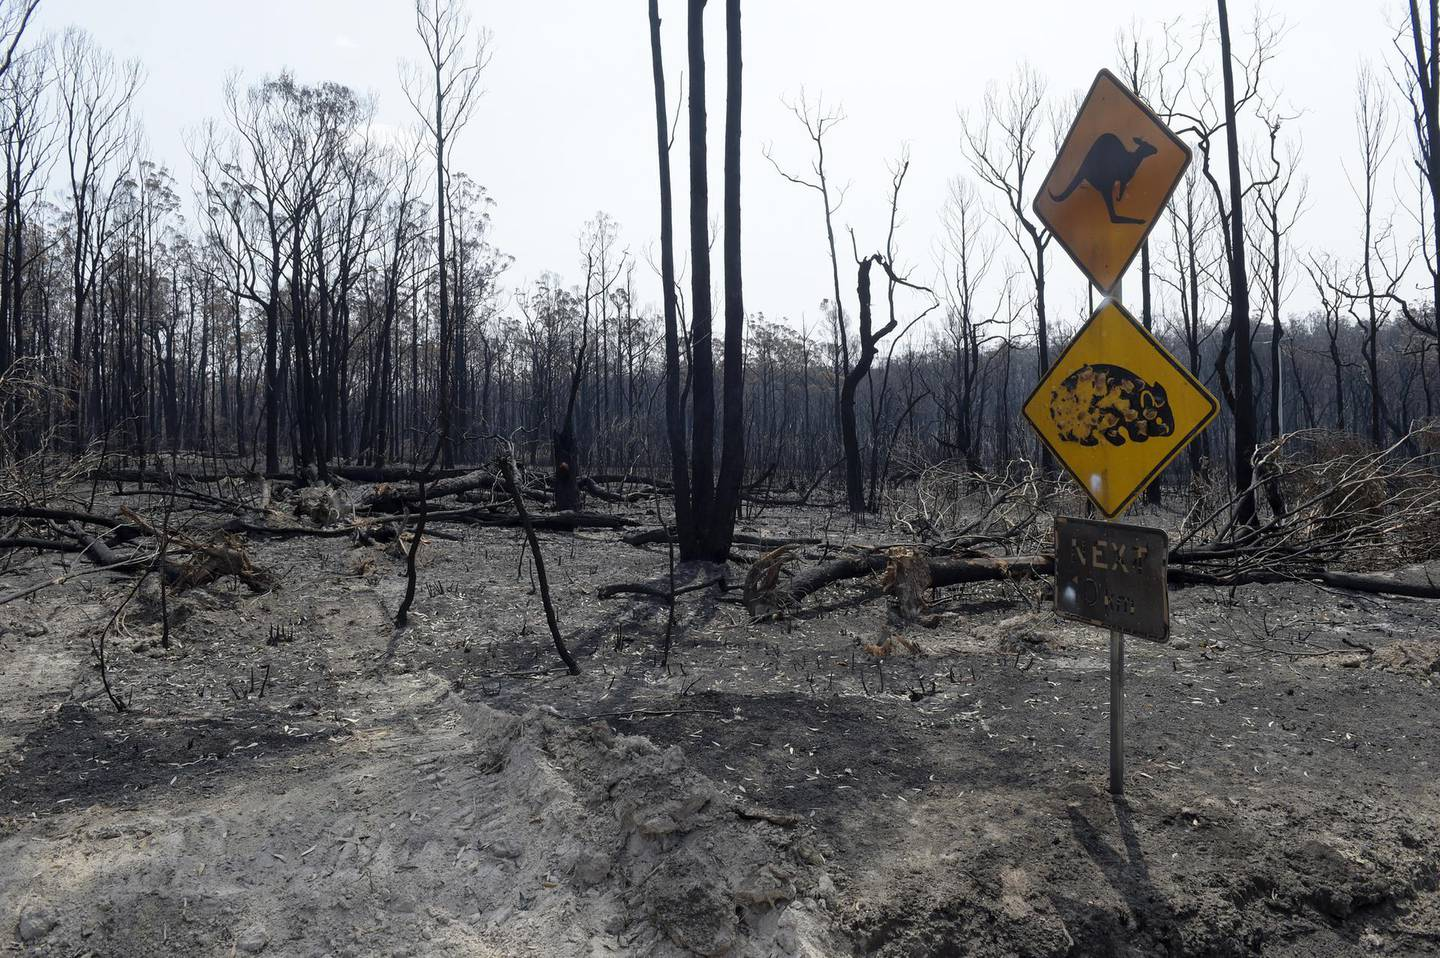 A scorched kangaroo and wombat warning sign stands next to trees burned by wildfires outside Buchan, East Gippsland, Australia, on Thursday, Jan. 9, 2020. Dozens of communities -- from small towns such as Pambula on the south coast of New South Wales state, to alpine villages in neighboring Victoria -- are again in danger from wildfires that have razed more than 2,000 homes, killed at least 26 people and charred more than 10 million hectares (25 million acres) of forest and bush across the nation in the past few months. Photographer: Carla Gottgens/Bloomber